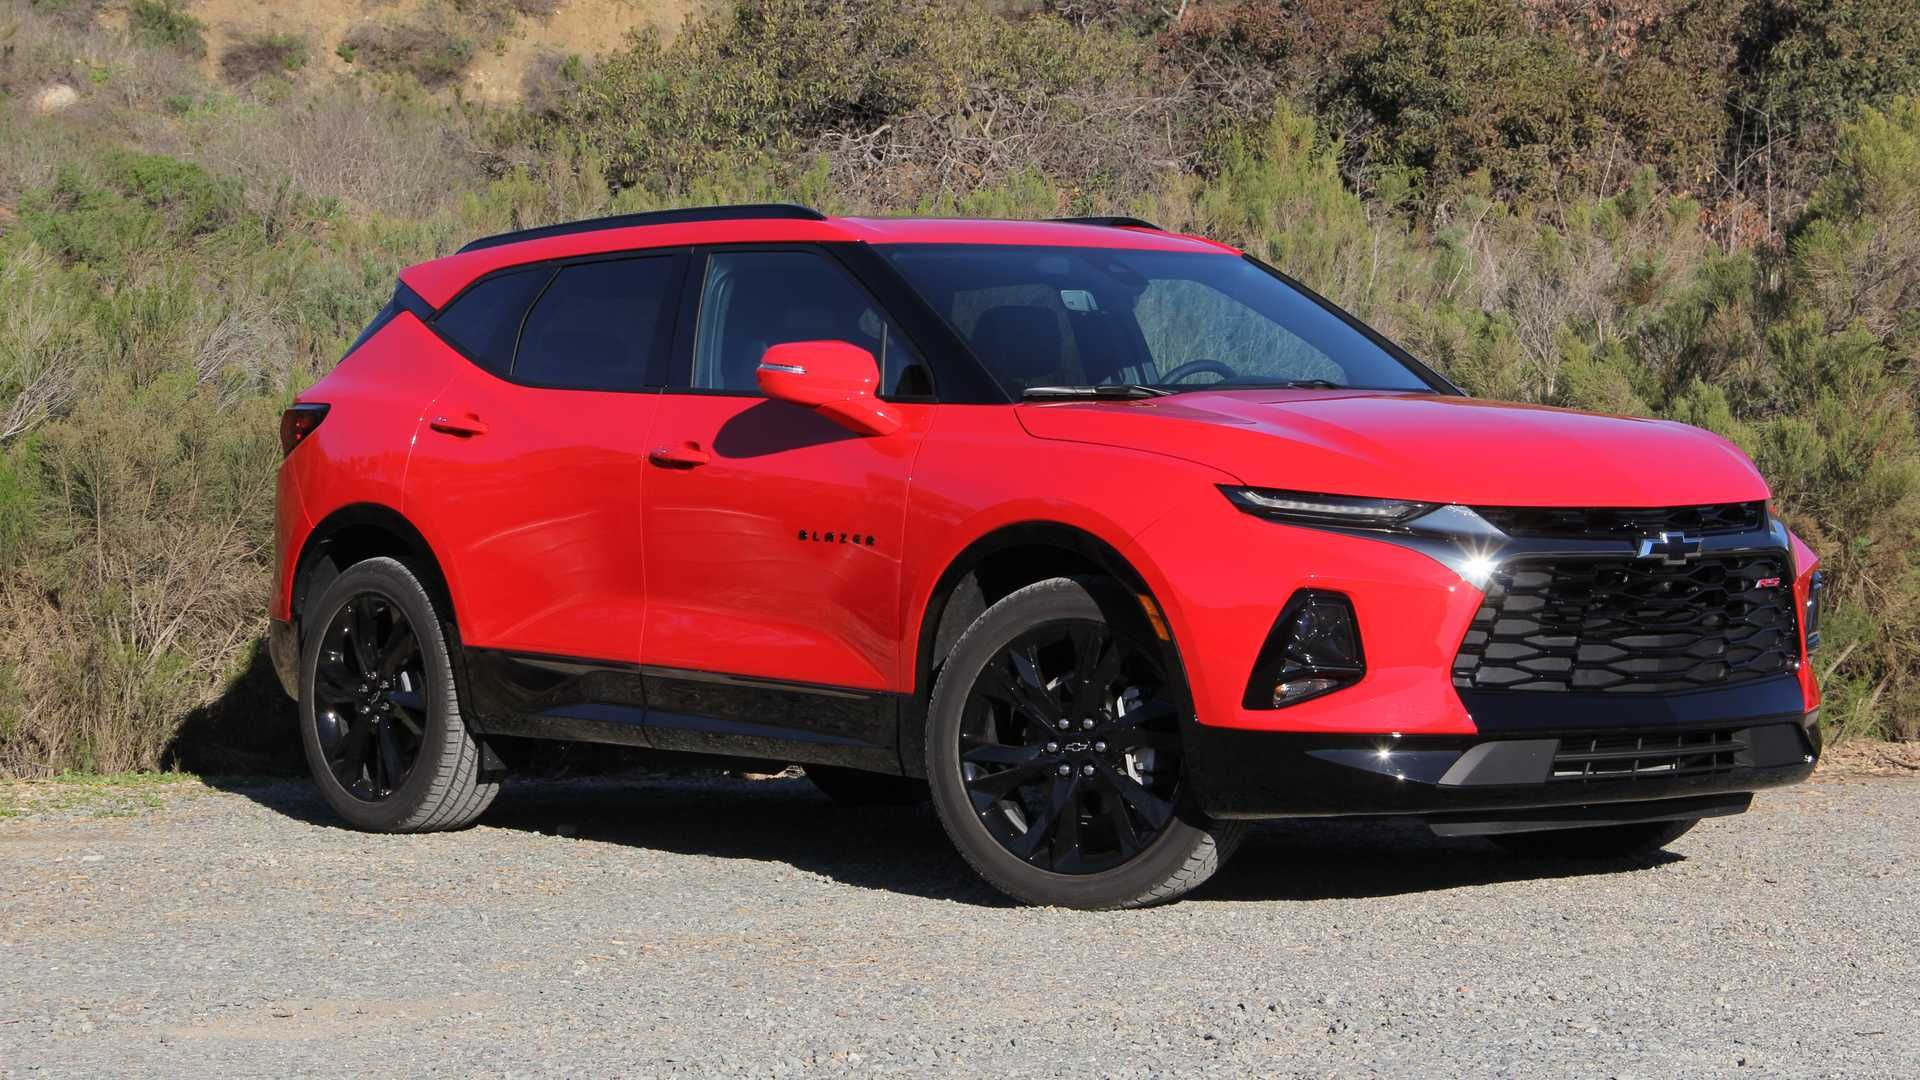 2020 Chevy Blazer Cakhd Cakhd Auto Cars Exclusive